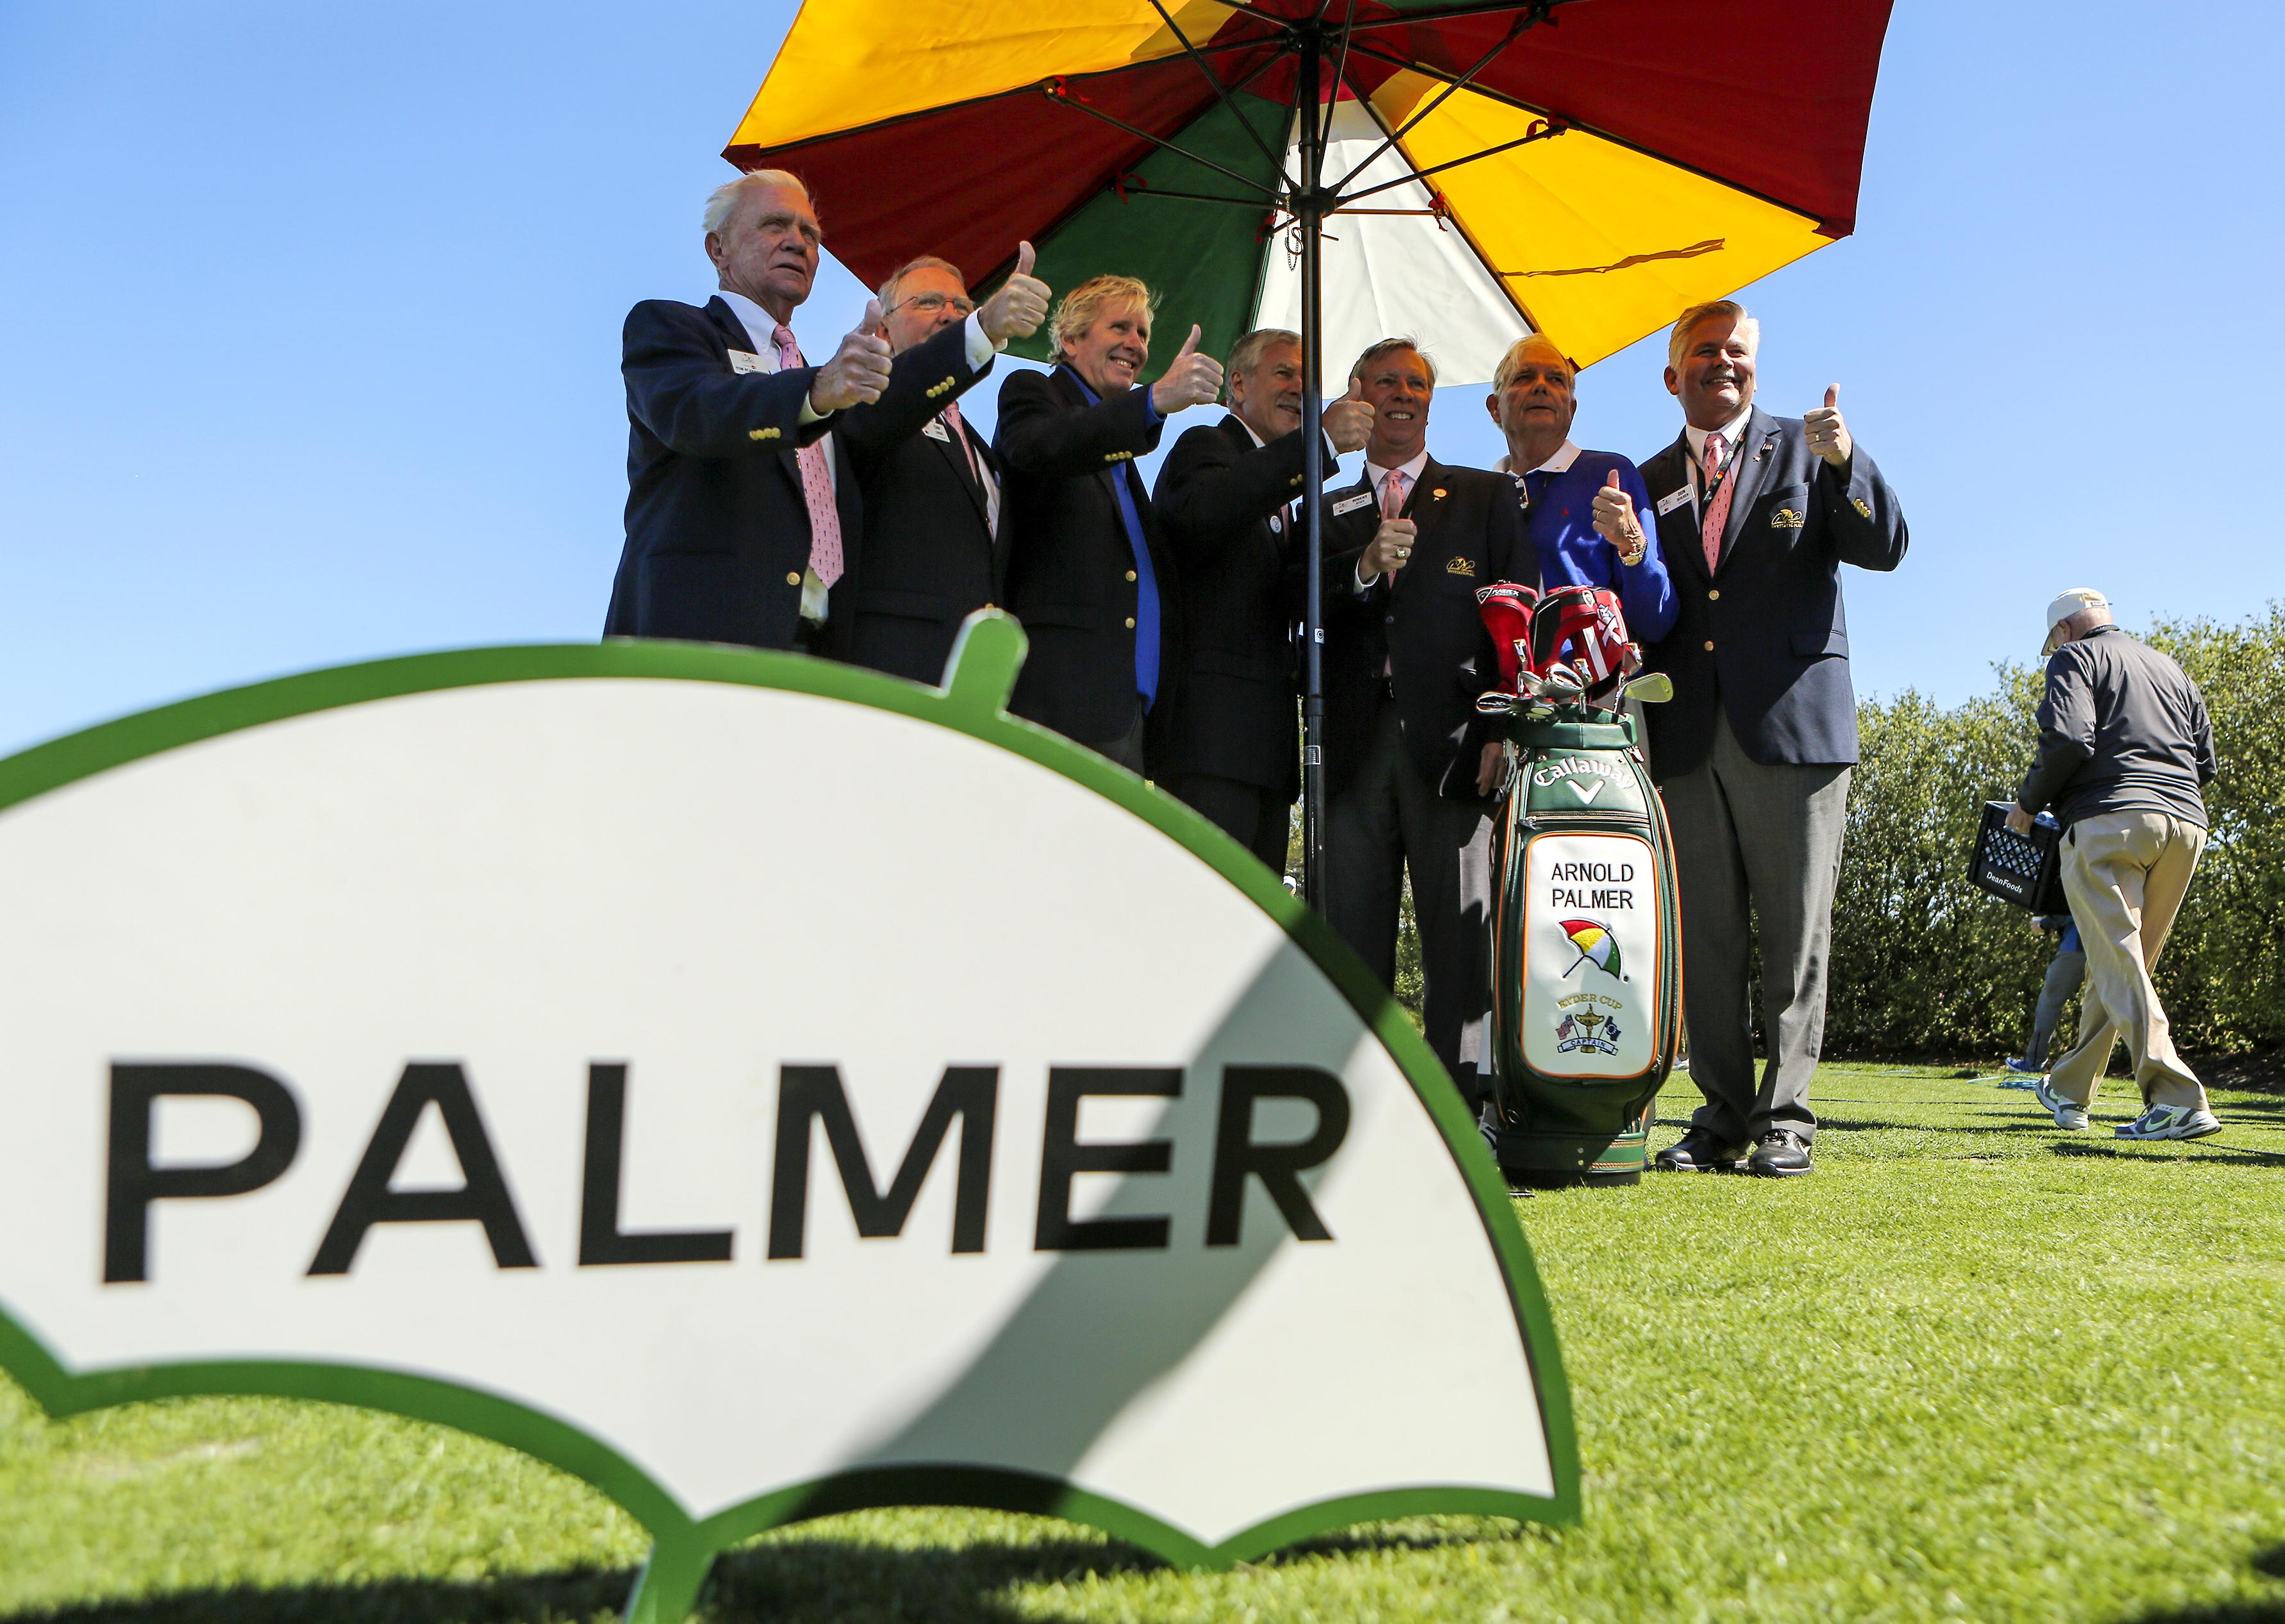 Arnold Palmer Invitational officials pose for a photo with Arnold Palmer's golf bag on Wednesday morning